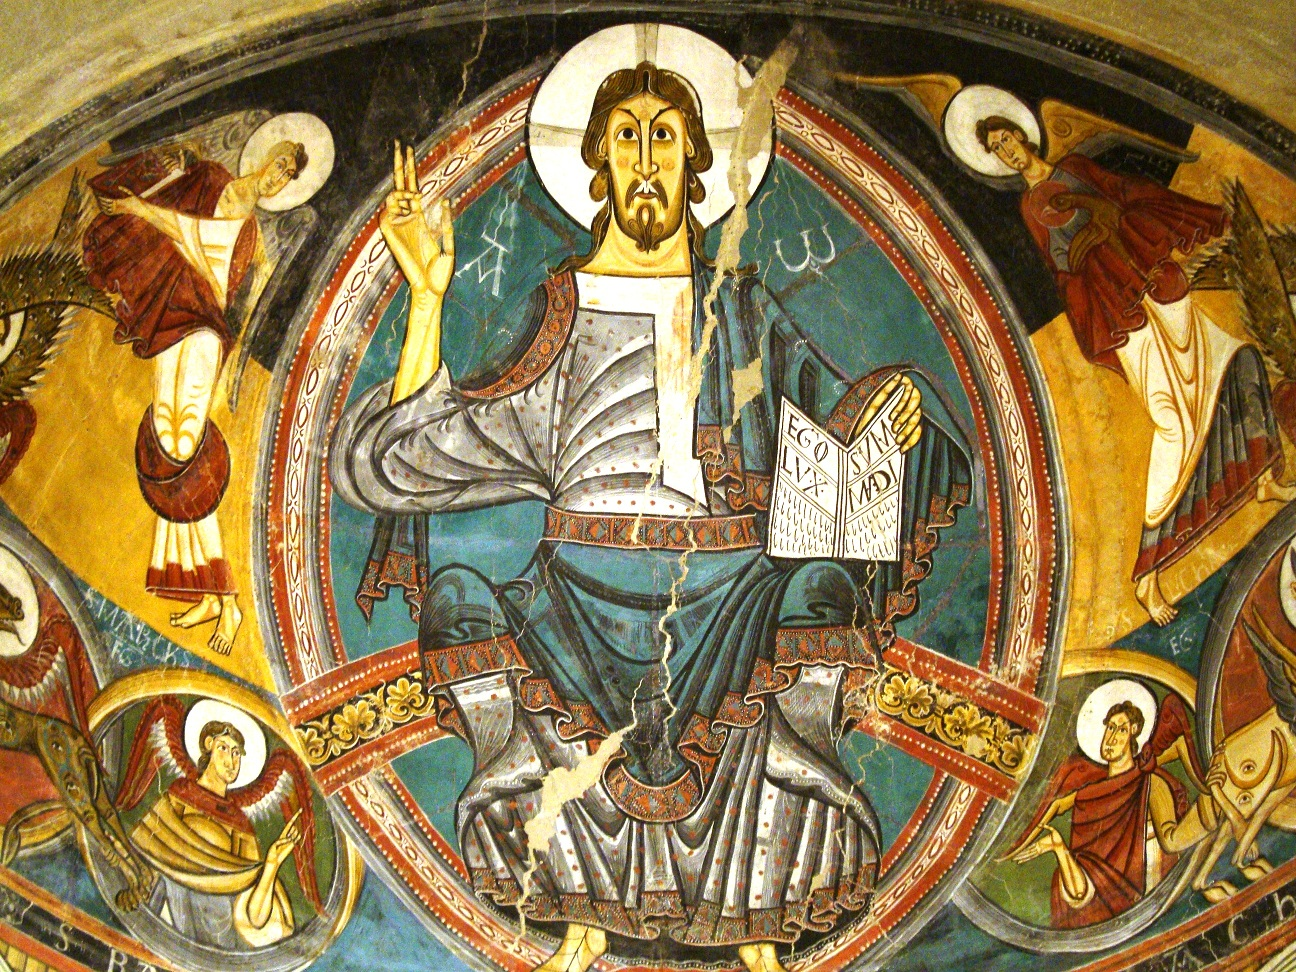 https://camel76.files.wordpress.com/2012/06/from-sant-climent-de-tahull-christ-in-majesty-xii-c.jpg